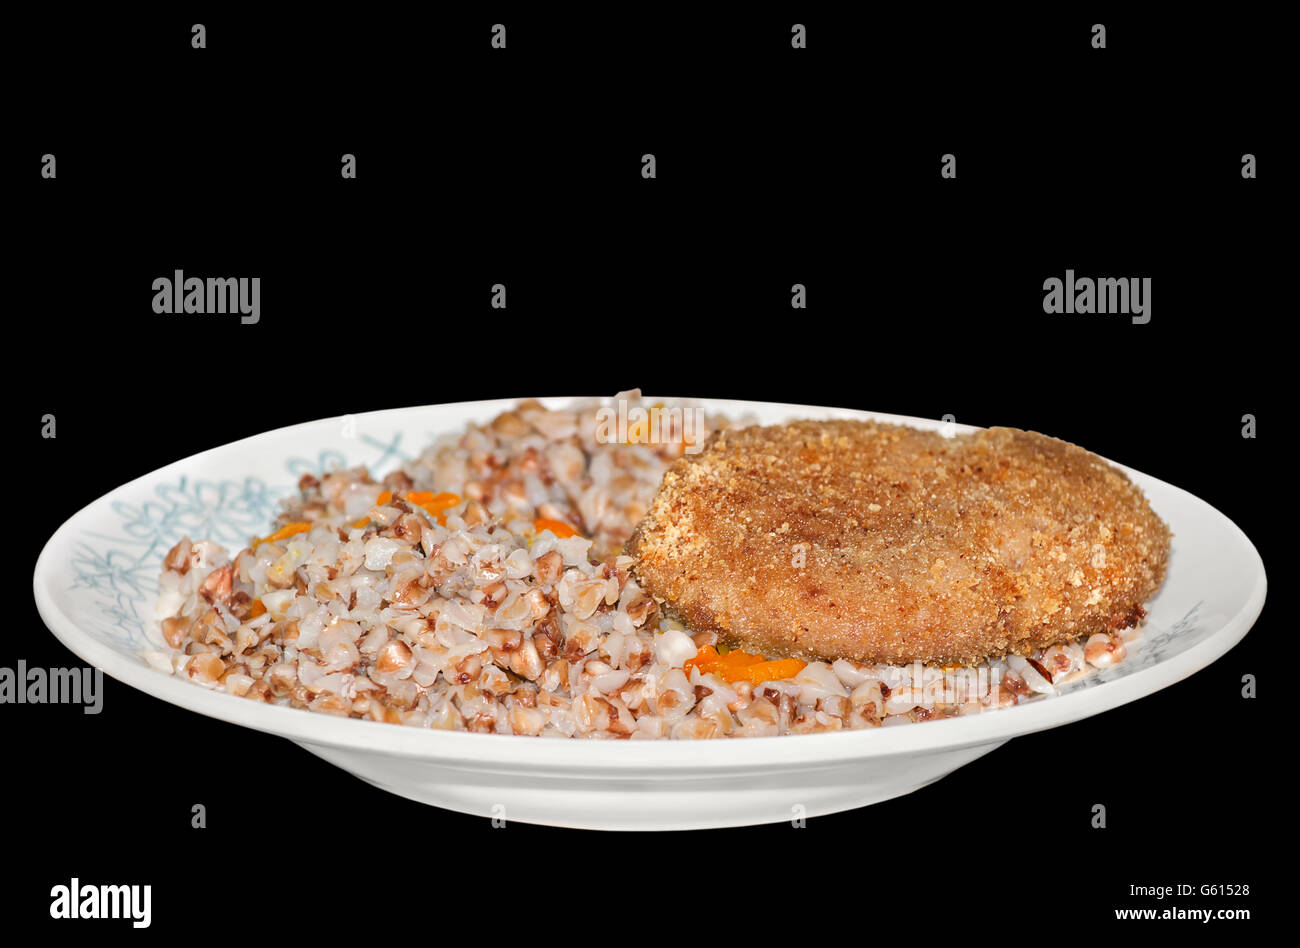 Buckwheat porridge with a cutlet - Stock Image